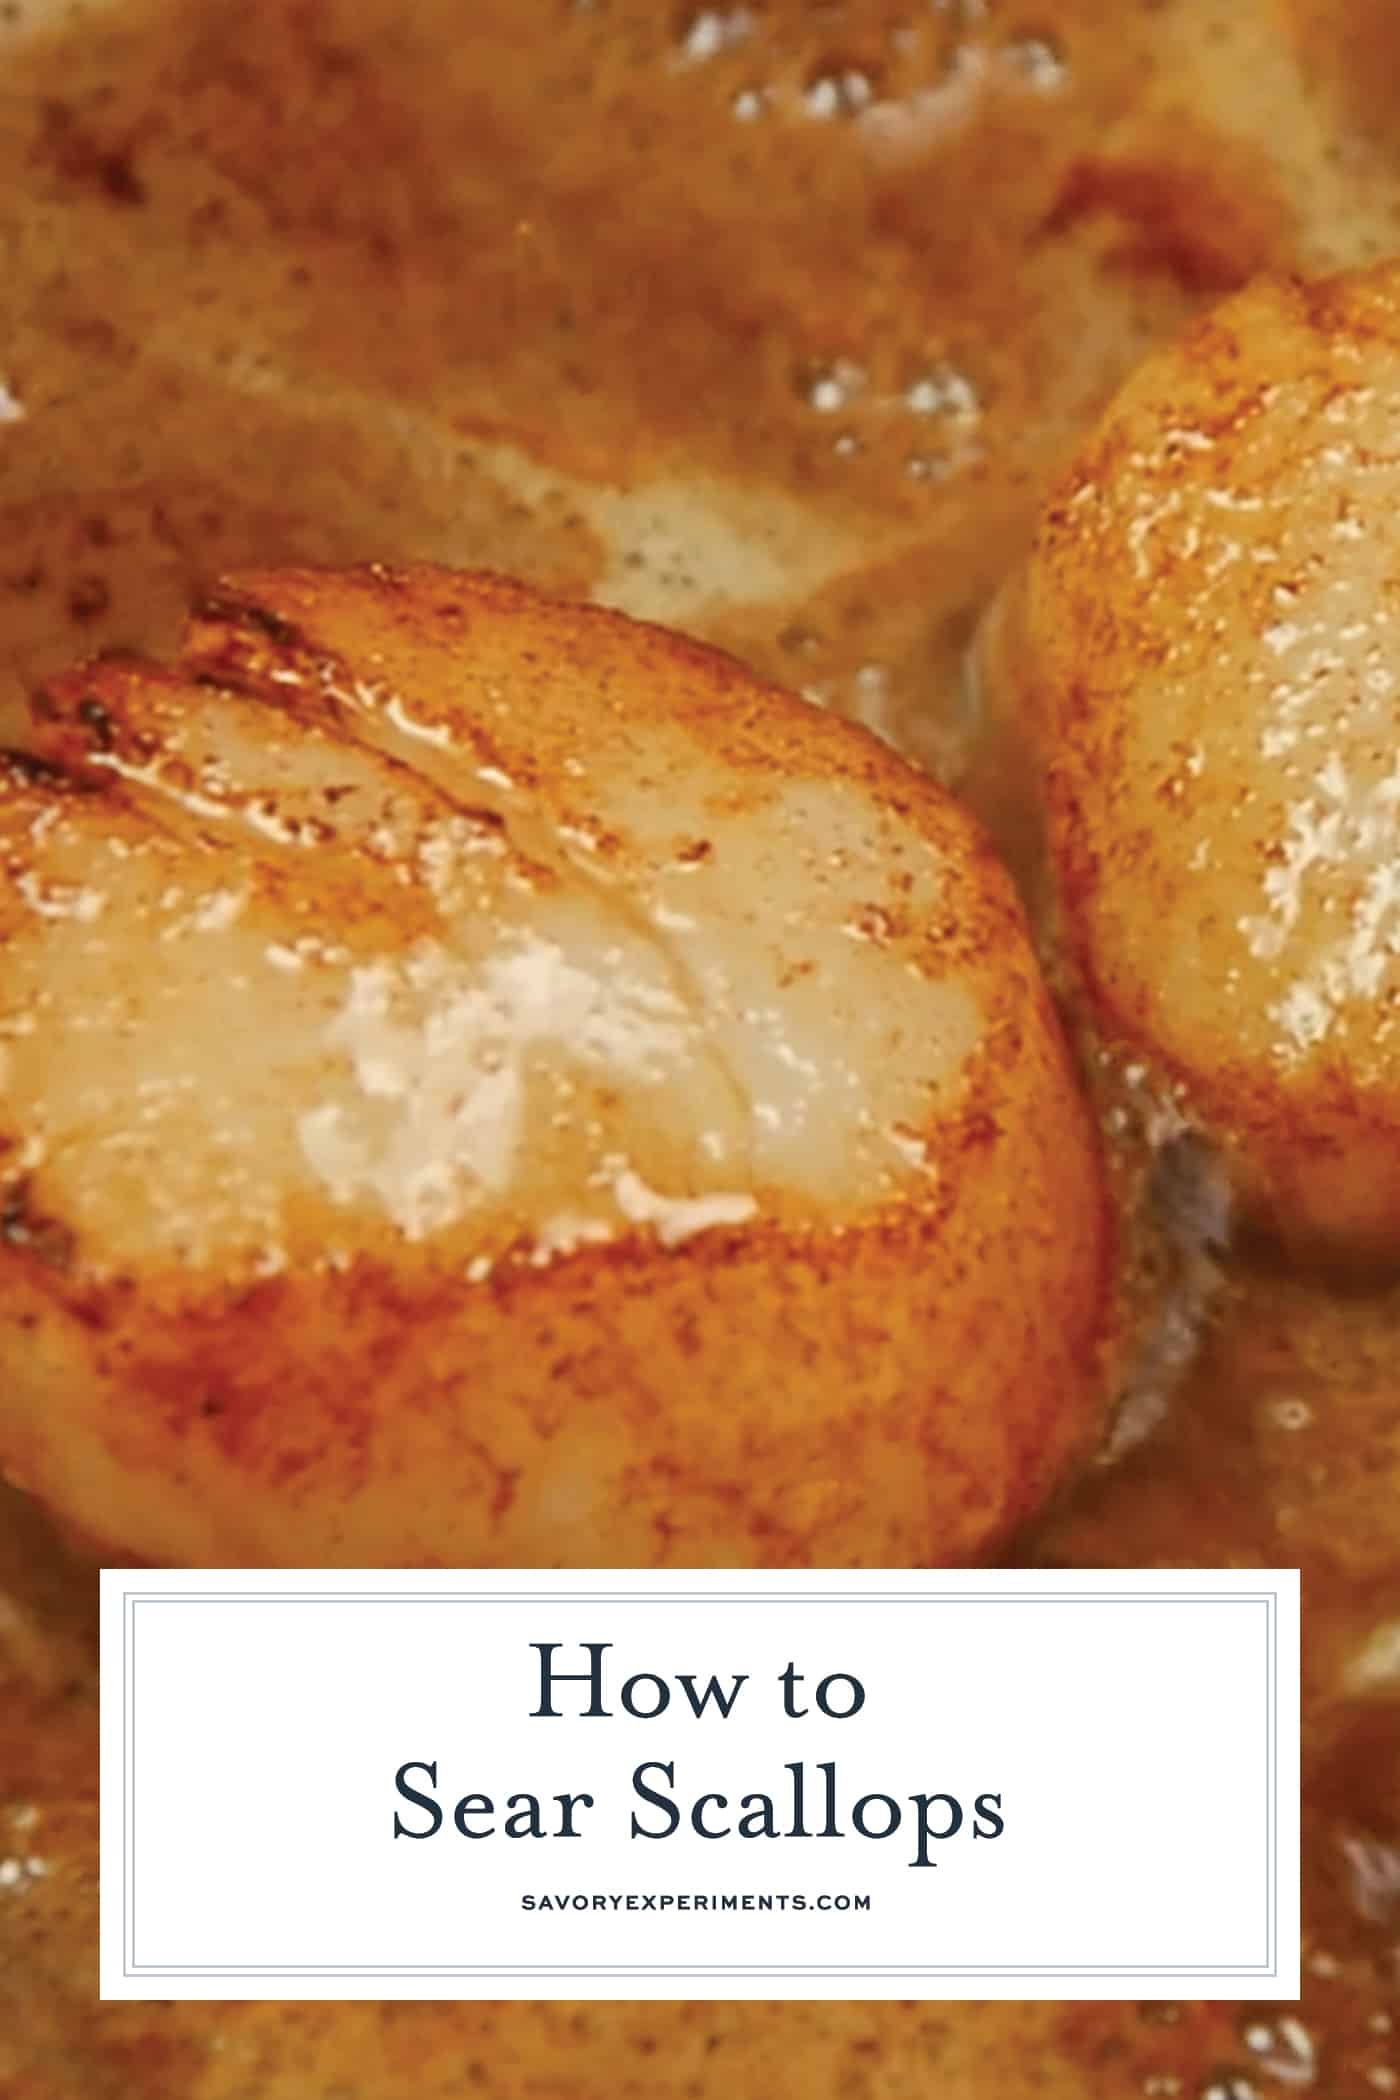 Pan Seared Scallops At Home Are Easy To Make Learn How To Prevent